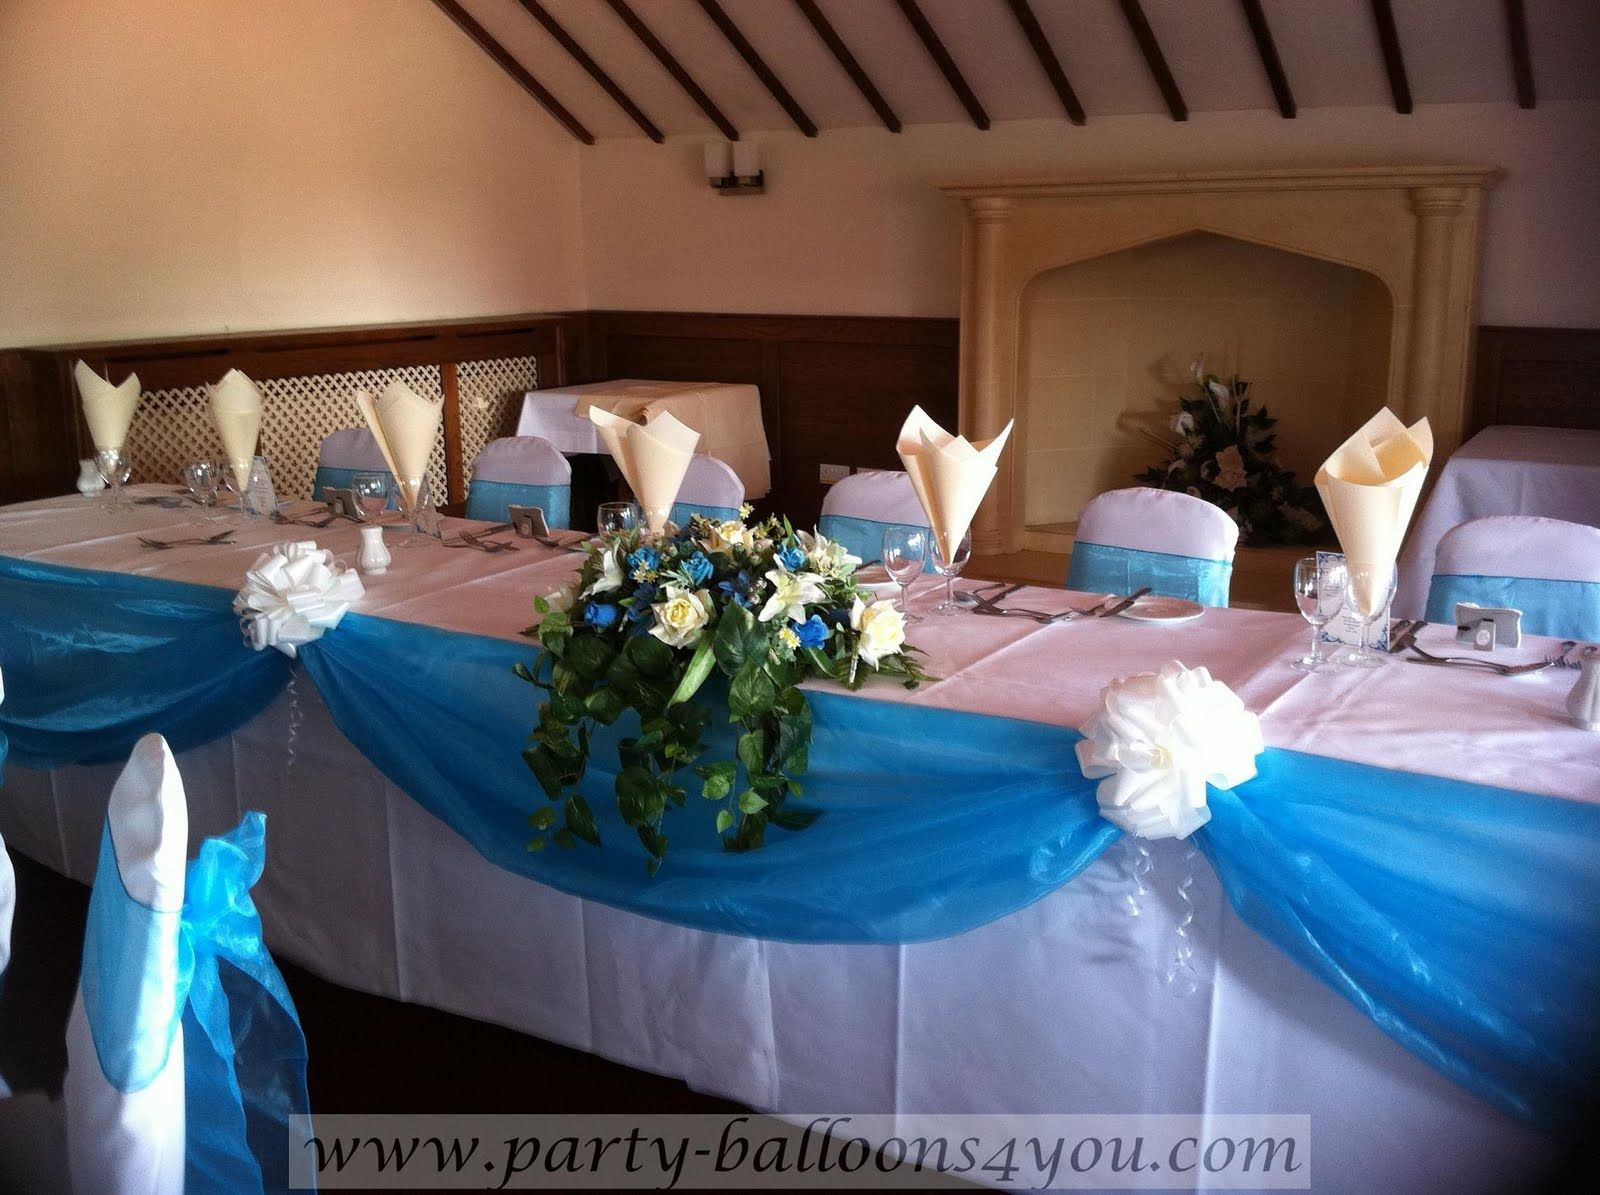 Wedding Table Turquoise Wedding Table Decorations decorating pews for weddings we decorated the top table with a turquoise organza swags with